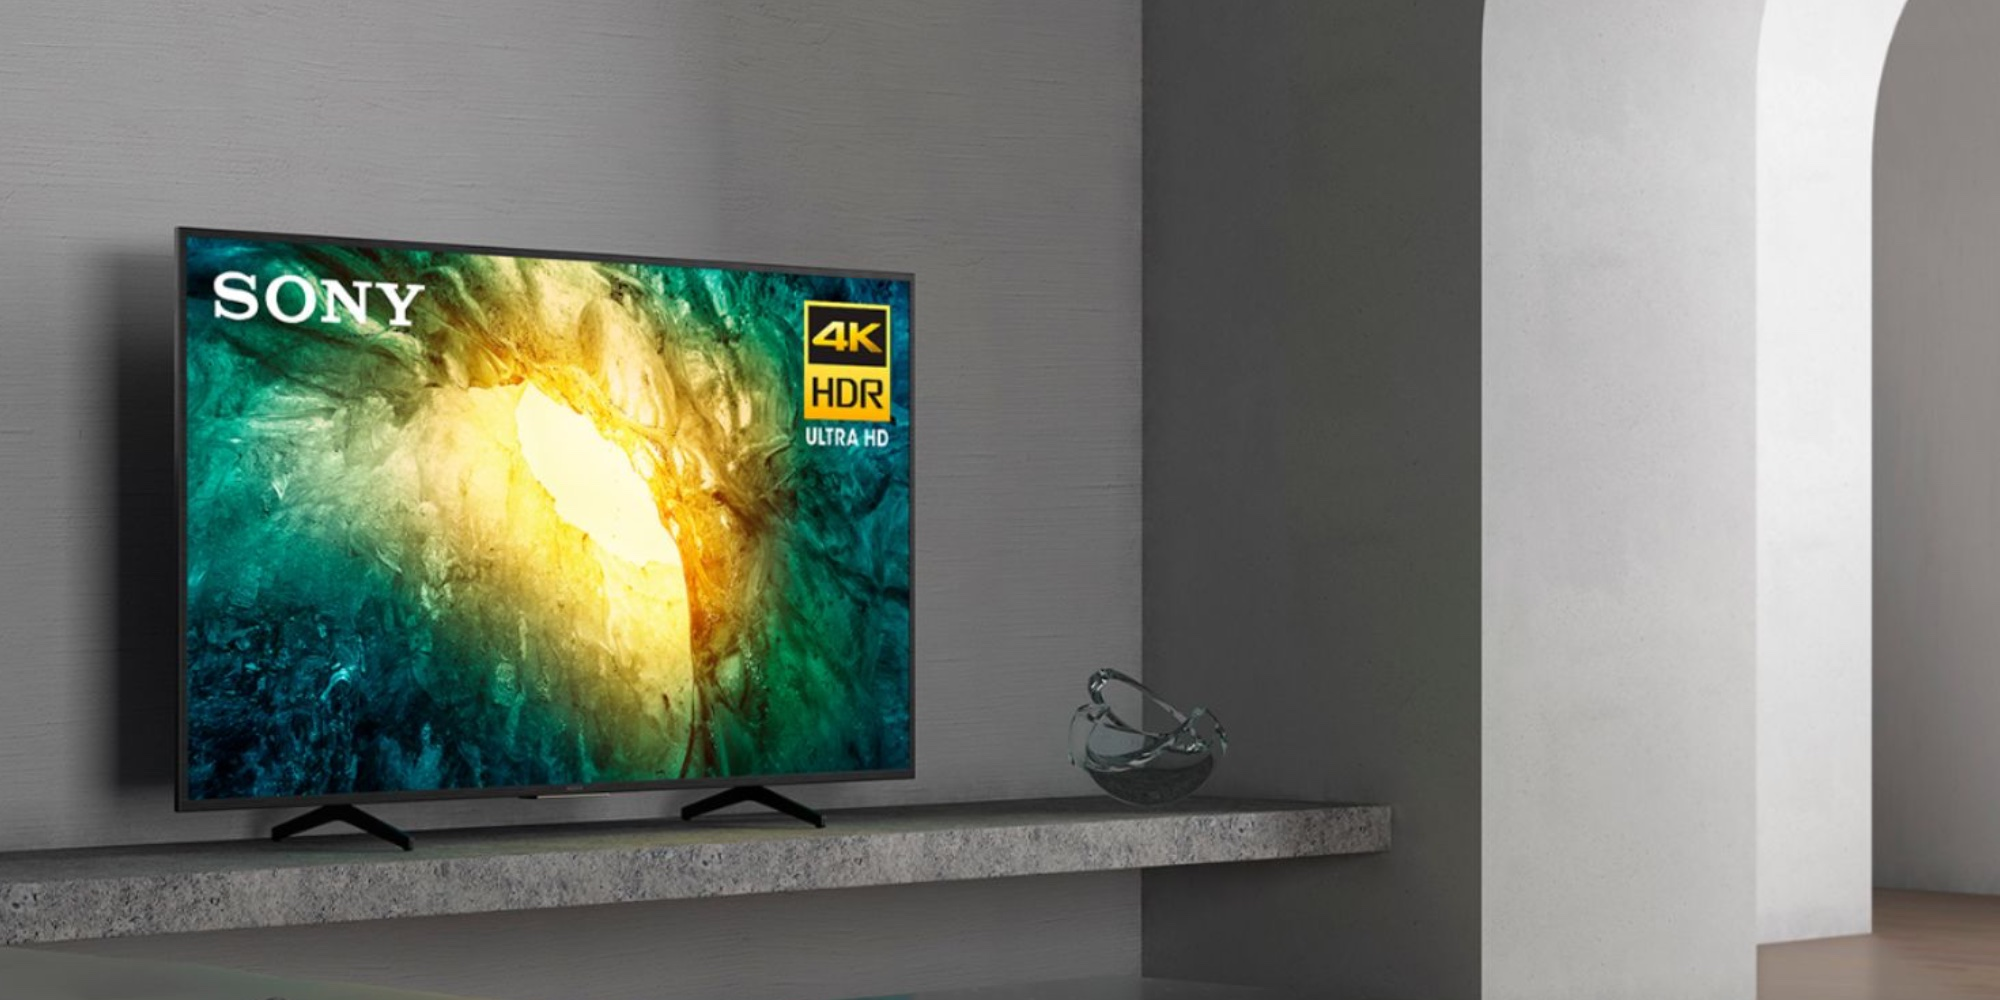 Sony S 55 Inch 4k Smart Android Tv Drops To 569 Following A 28 Discount 9to5toys